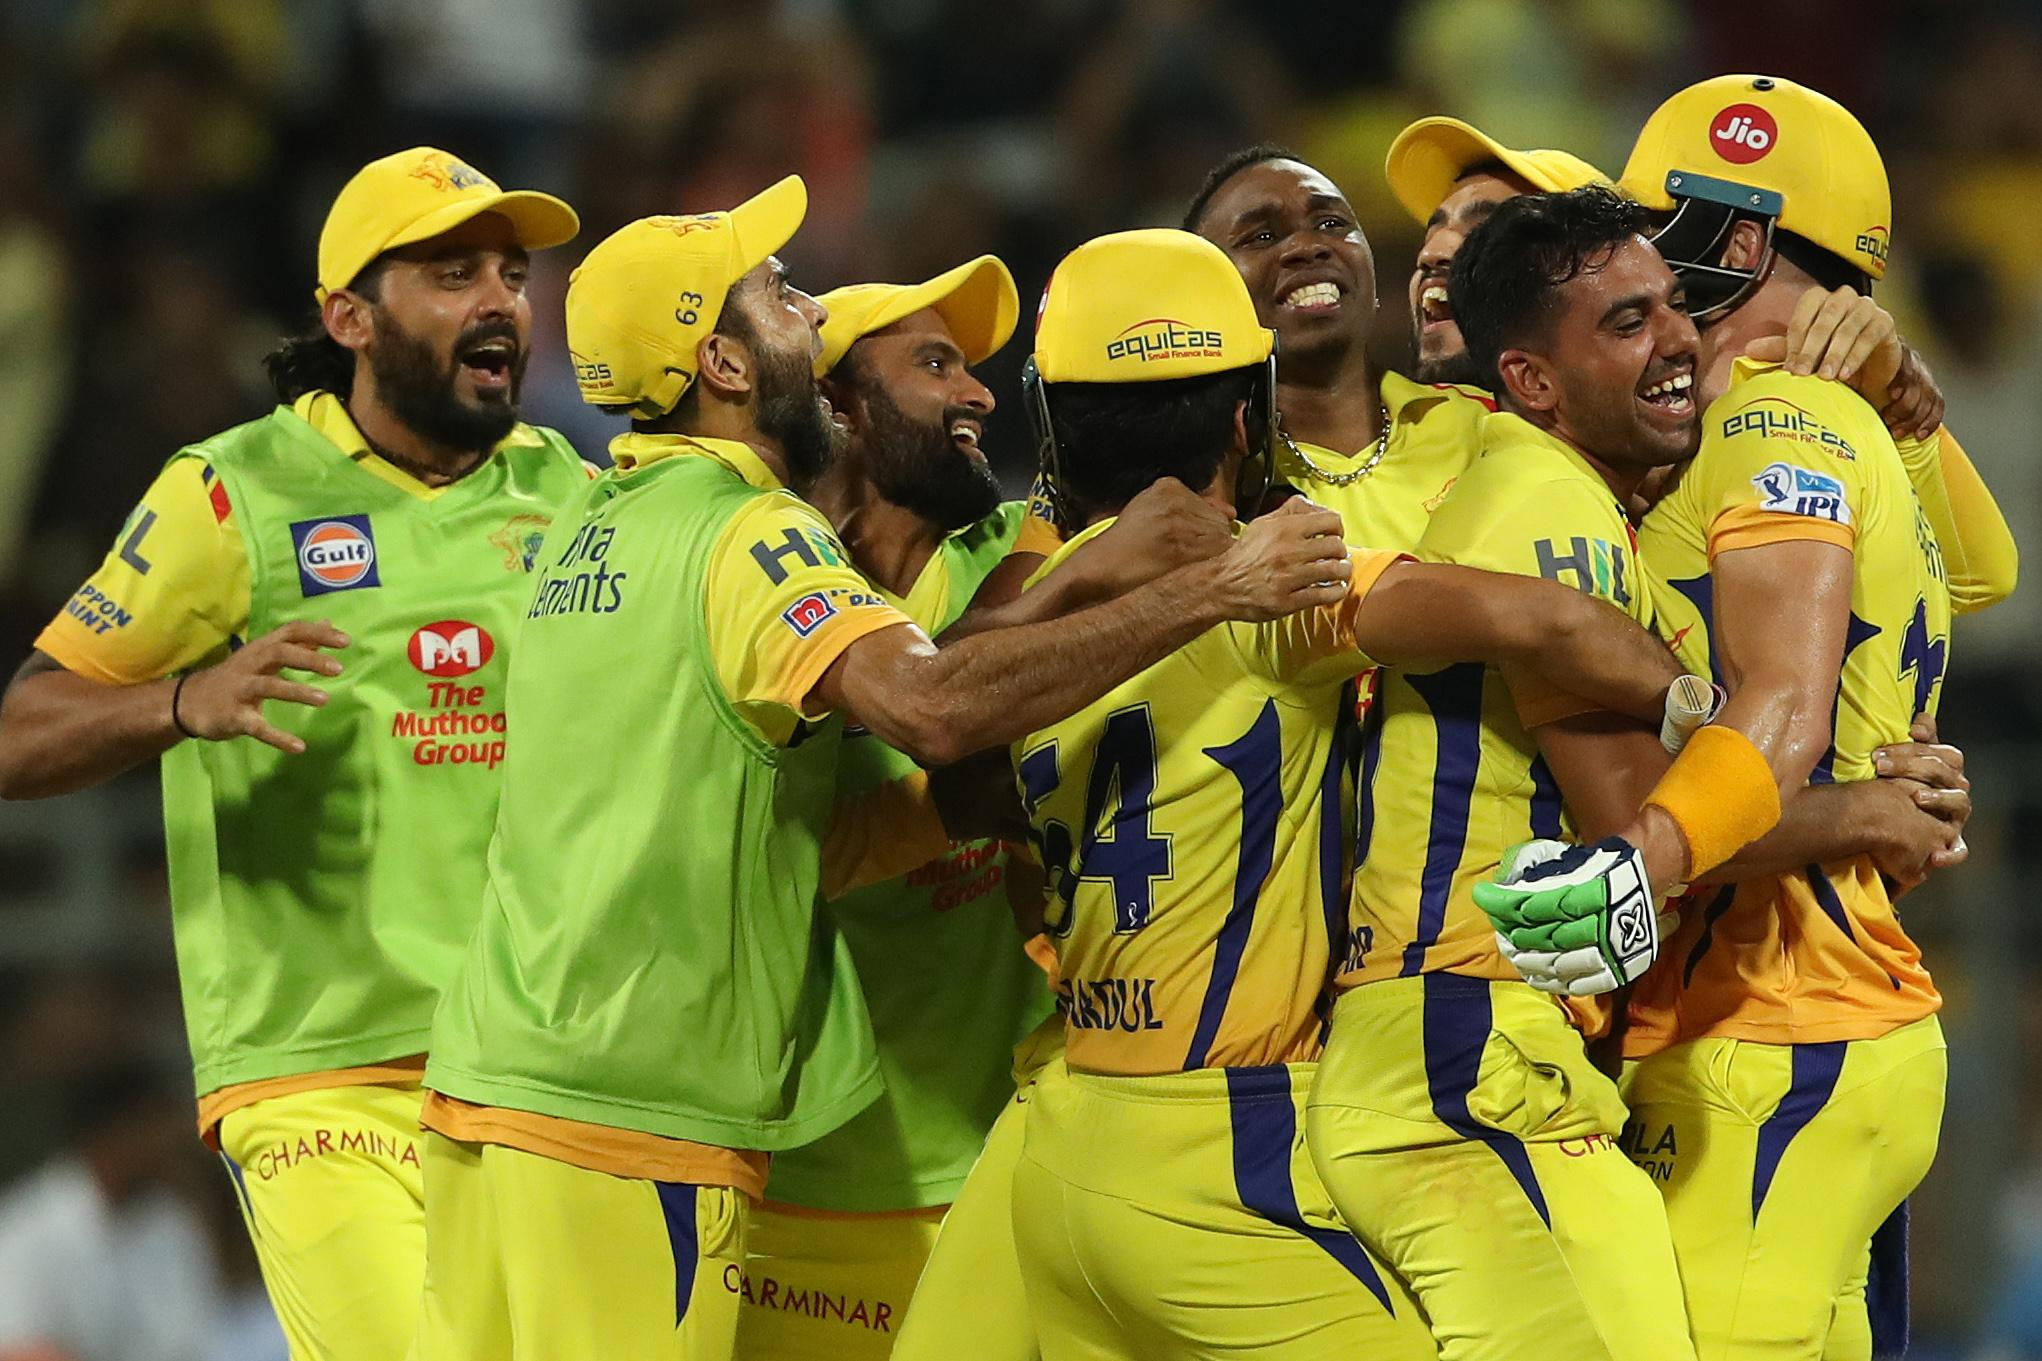 Super Kings and Royal Challengers clash in IPL 2019 opener